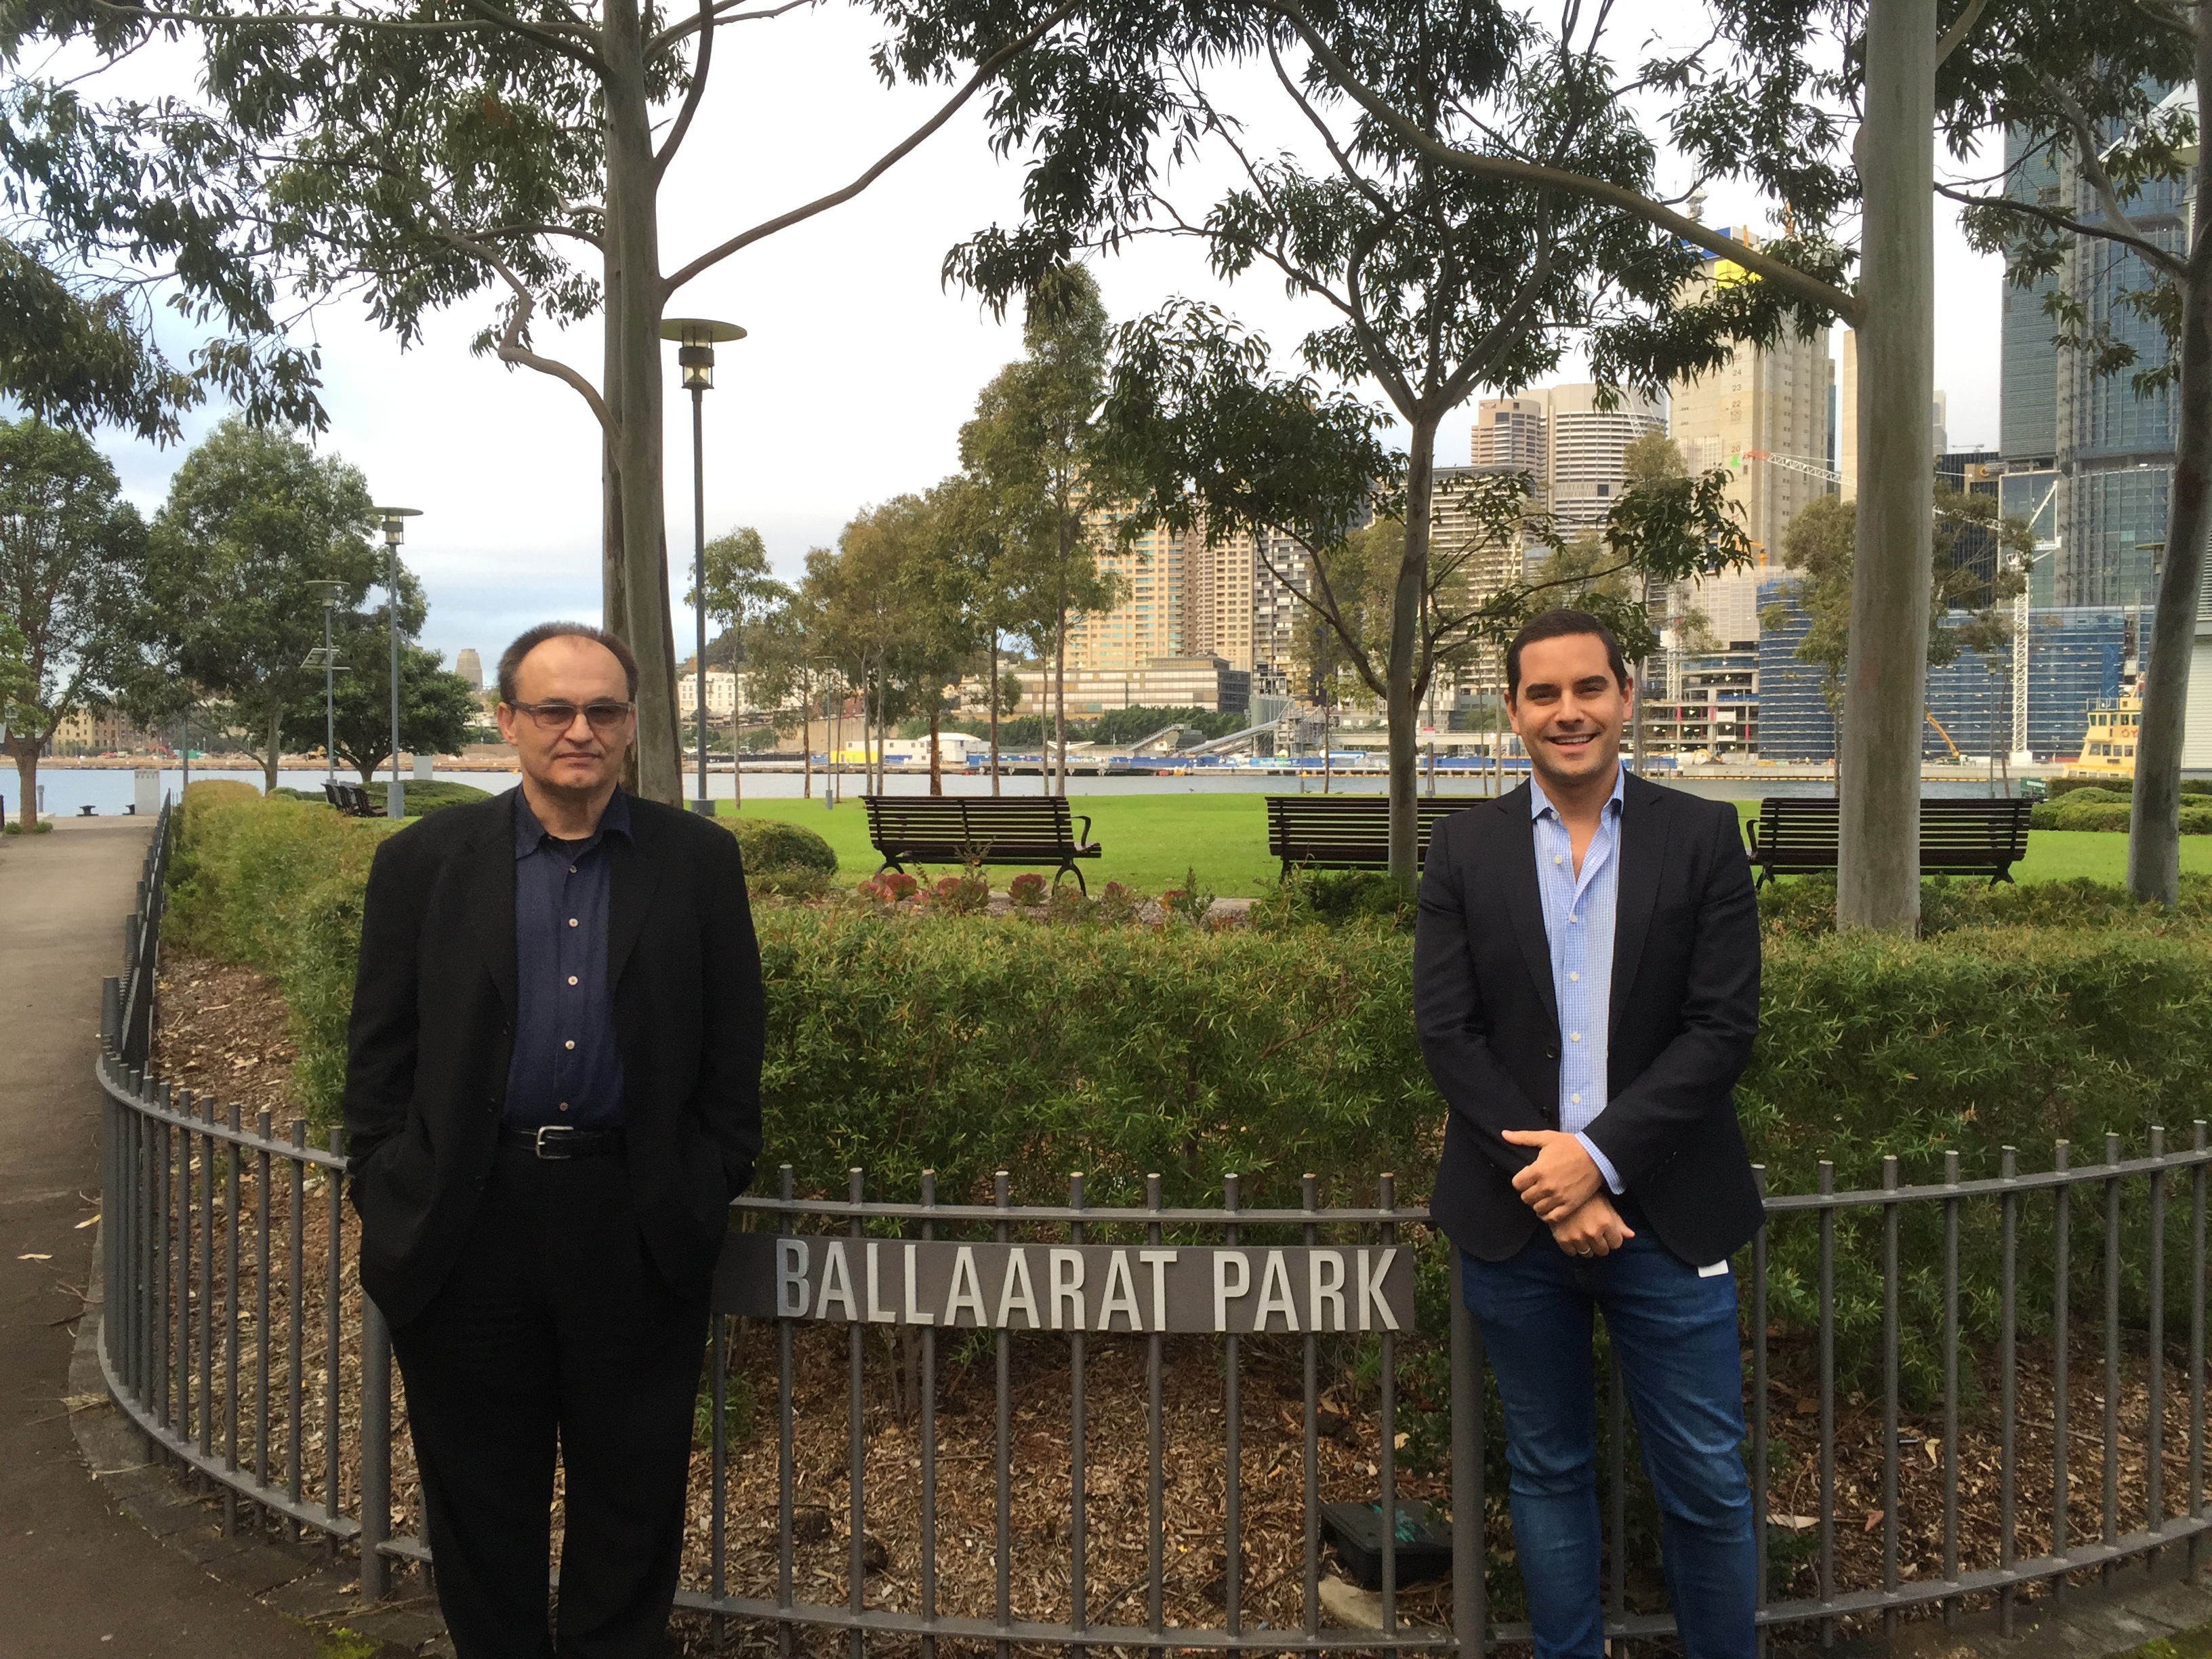 Greenwich puts Ballaarat Park on government's agenda